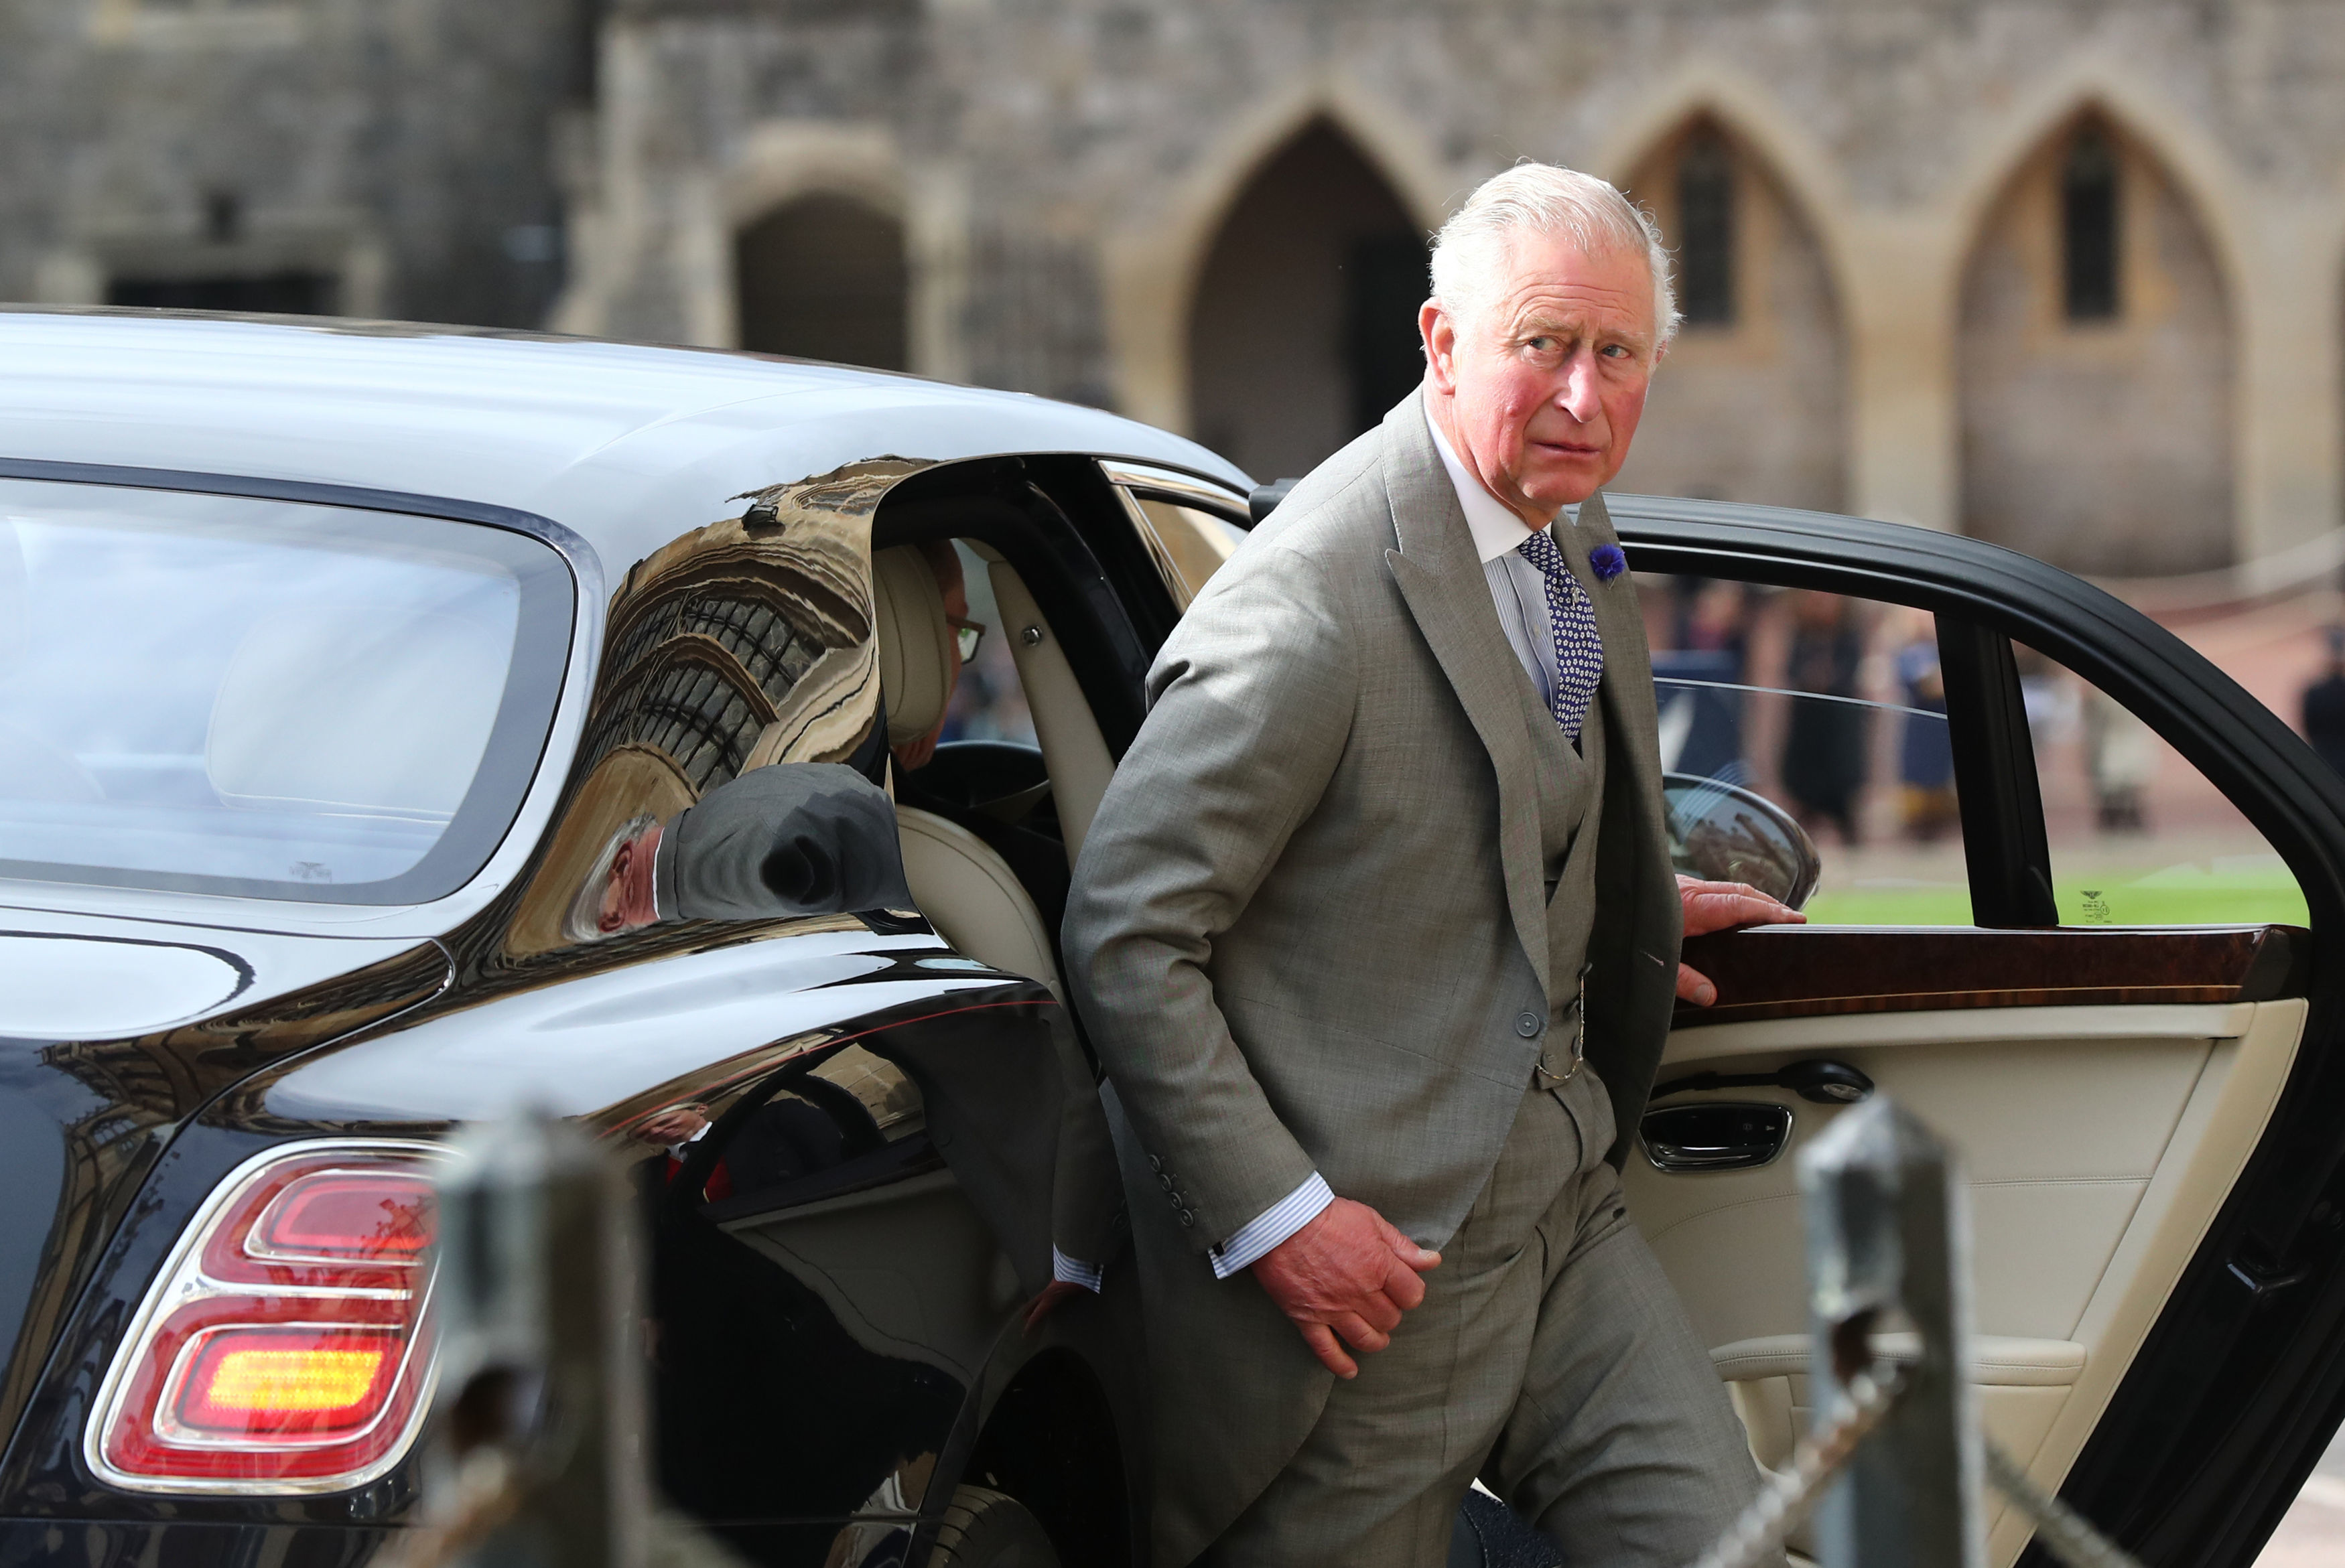 princes charles at princess eugenie royal wedding